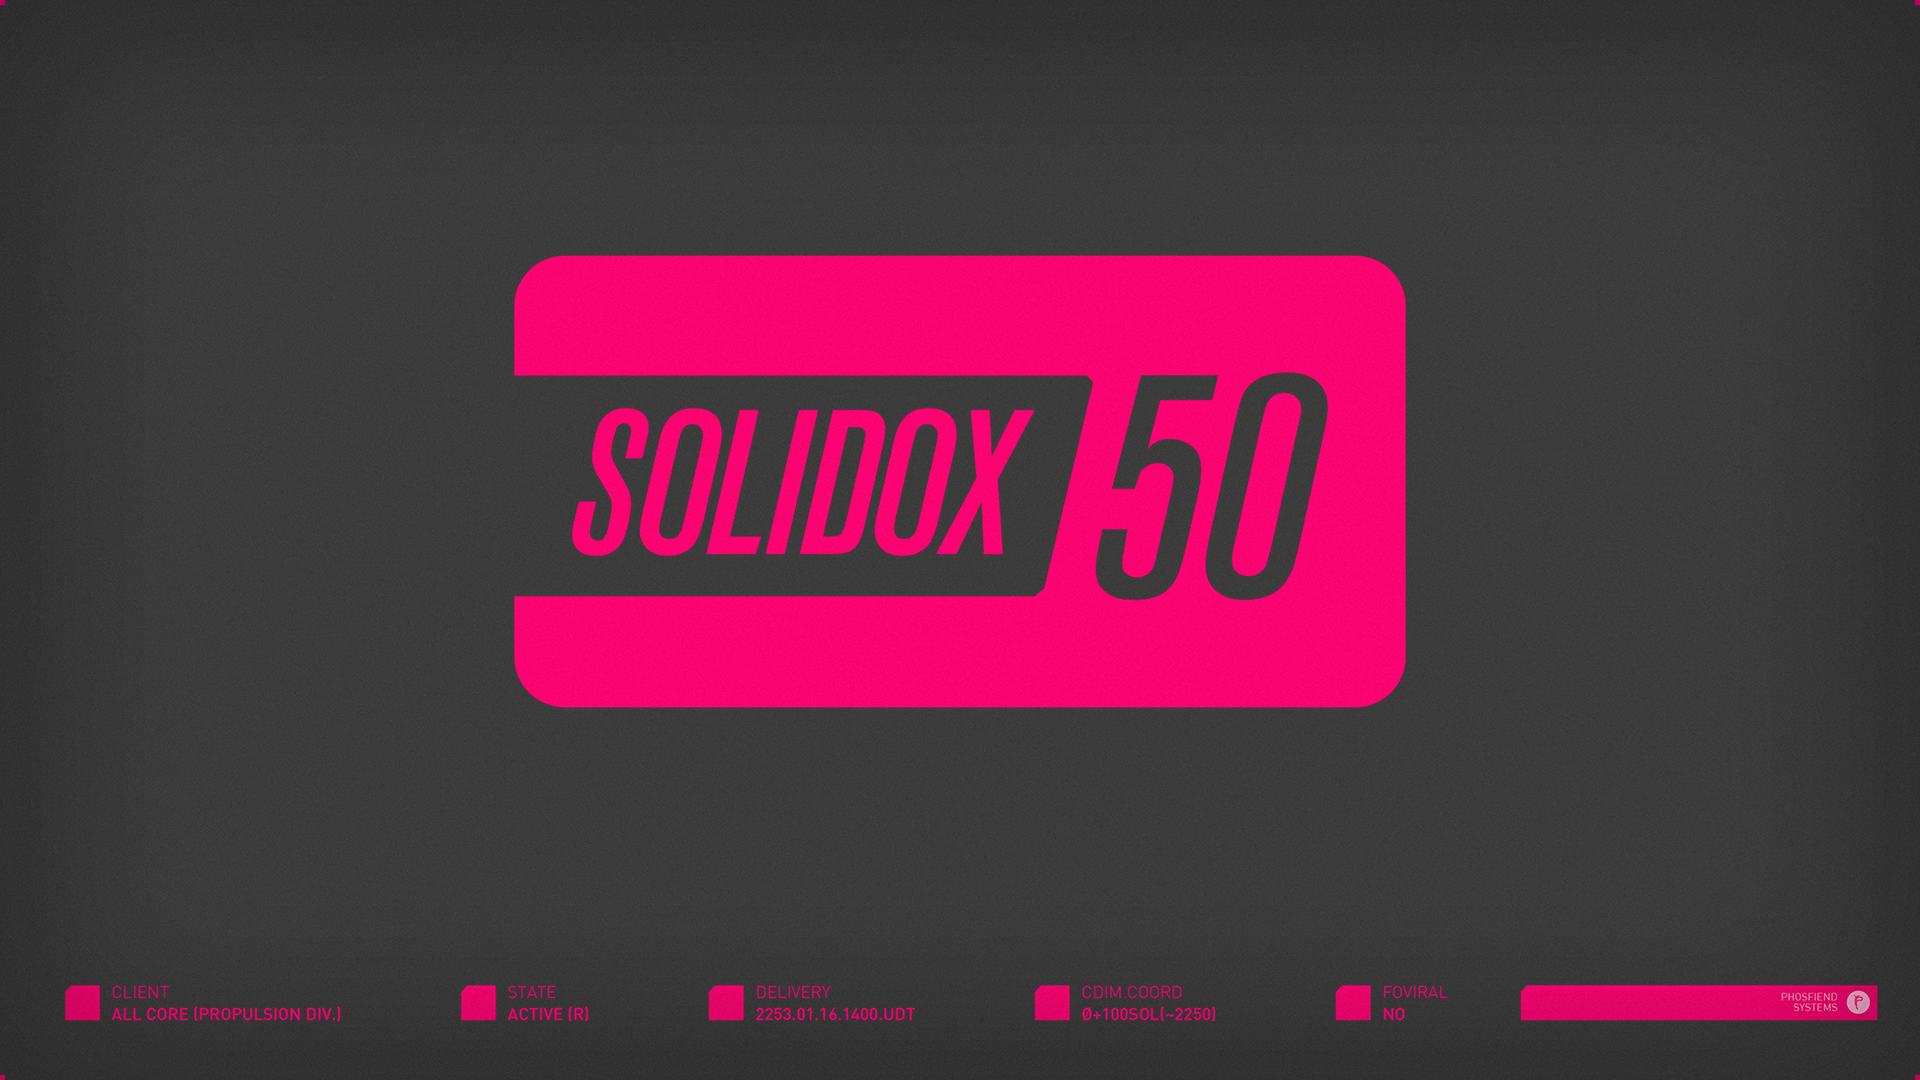 Solidox 50 for All Core Propulsion Division | circa 2253